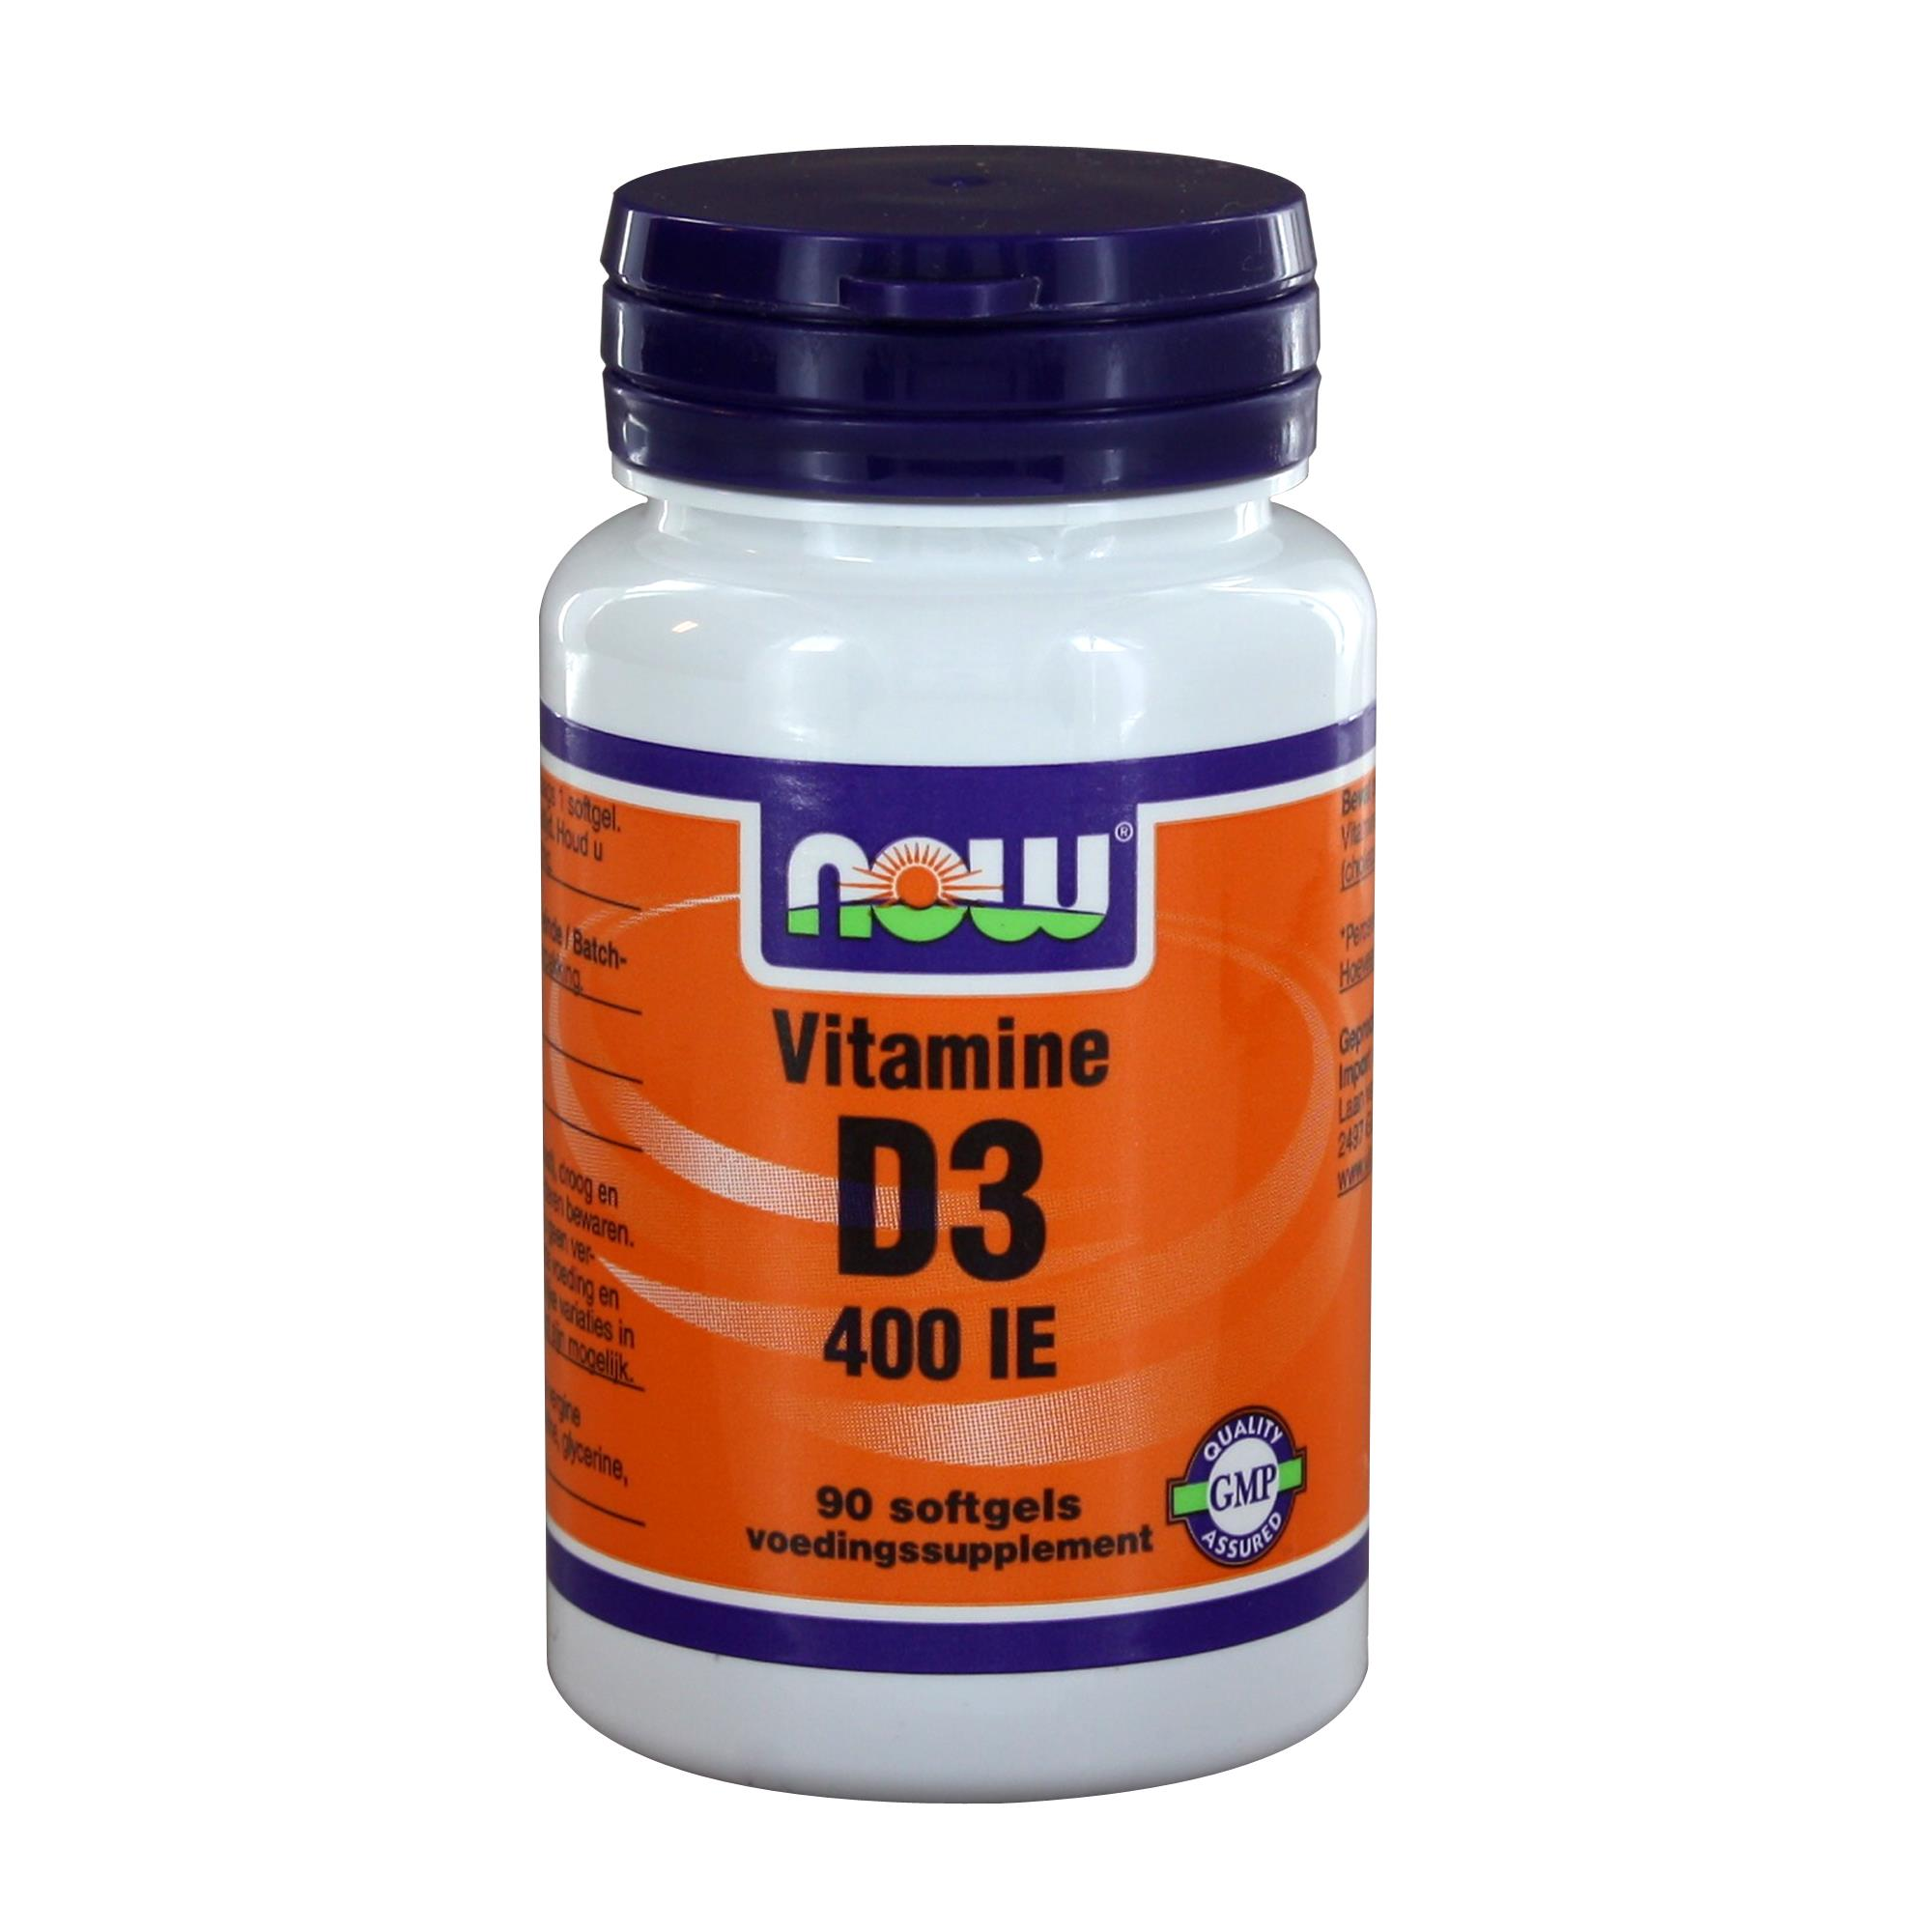 img 2401 - Vitamine D3 400 IE (90 softgels) - NOW Foods